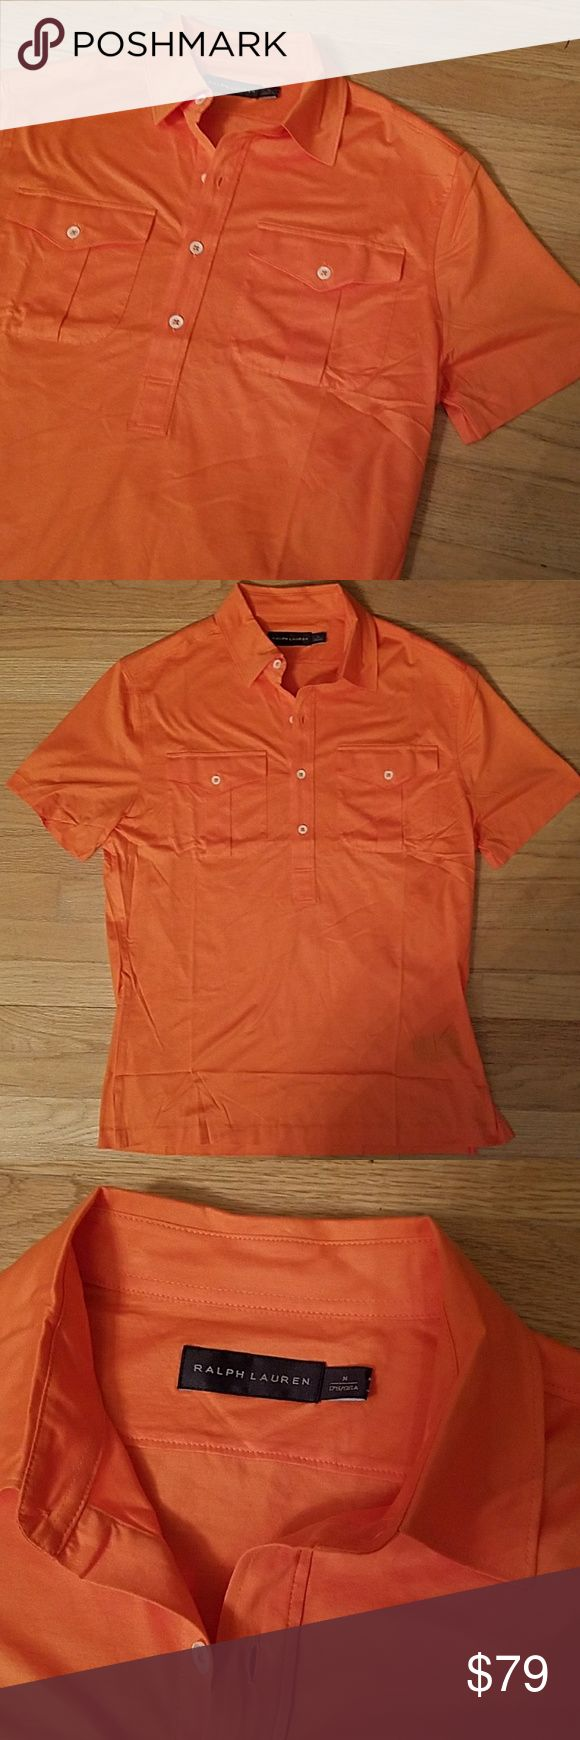 Ralph Lauren Black Label Slim Fit Orange Shirt new Ralph Lauren Black Label  Retail $300 Orange button up 2 chest pockets New with tags SLIM fit  100% Cotton silky feel Ralph Lauren Black Label Shirts